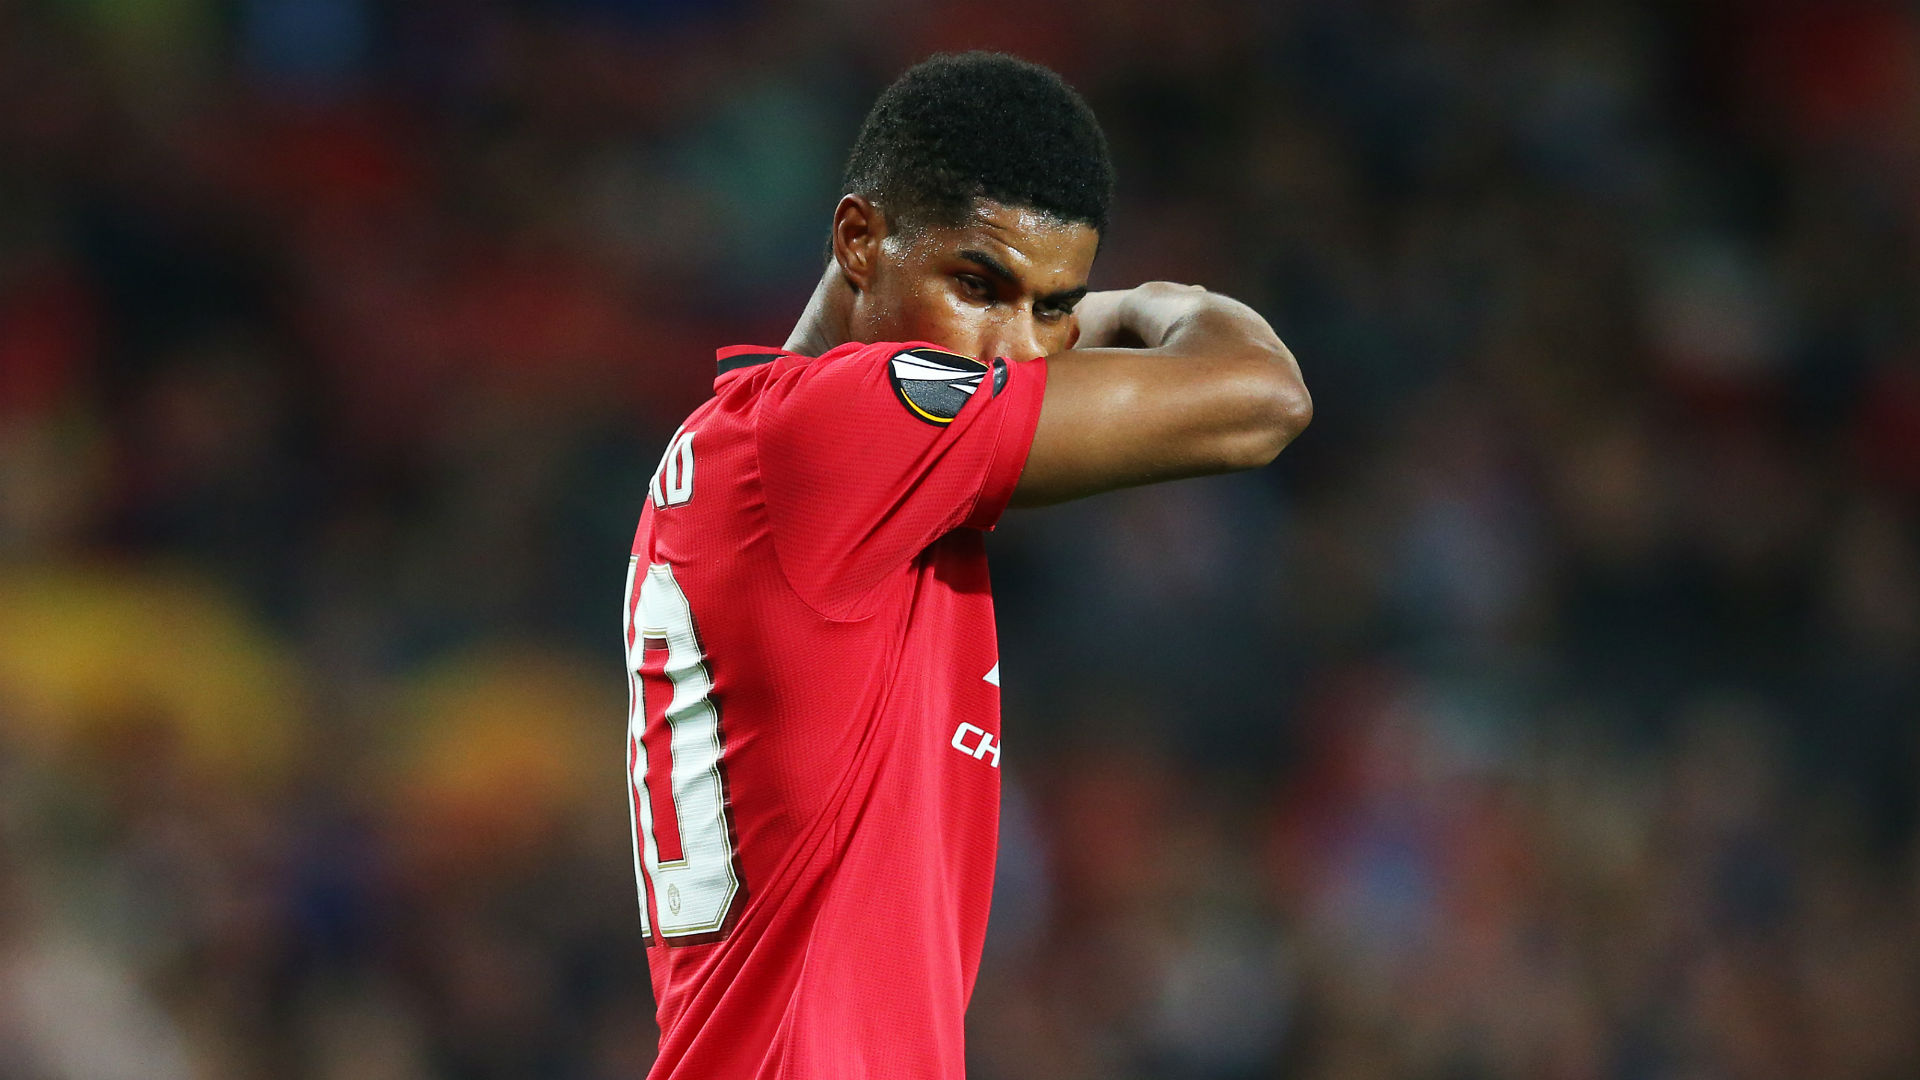 Rashford still learning - Solskjaer backs shot-shy striker